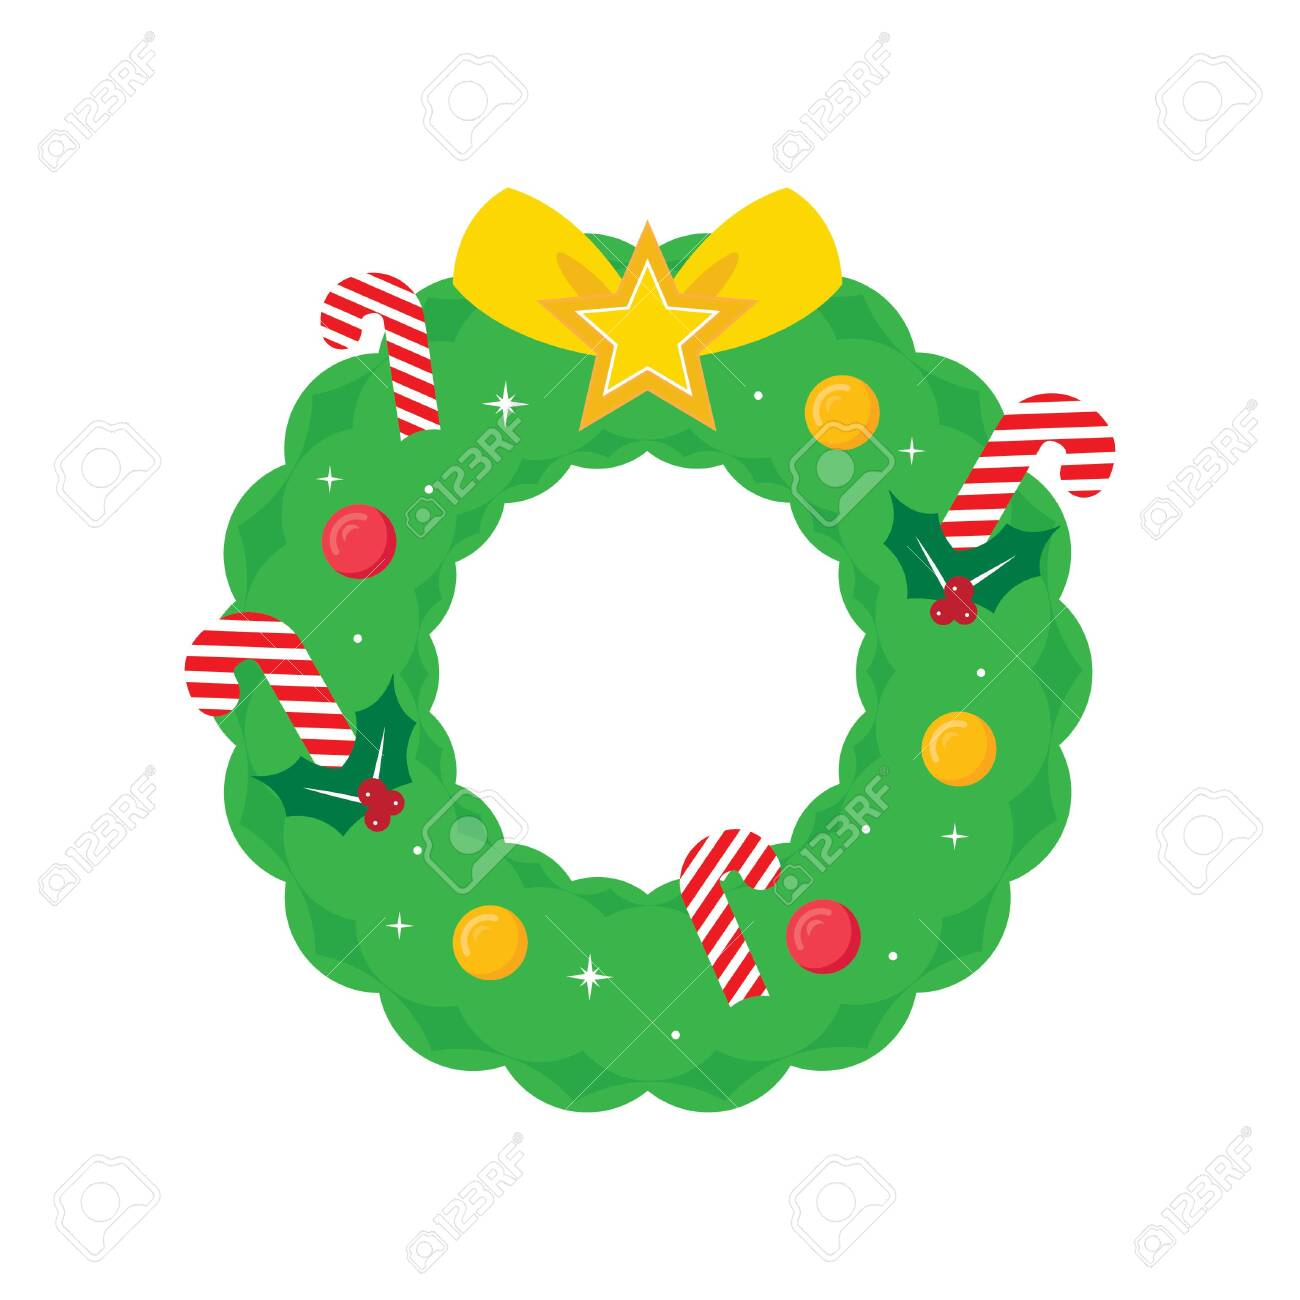 Christmas Holiday Wreath Vector Illustration Icon Background Royalty Free Cliparts Vectors And Stock Illustration Image 152436423